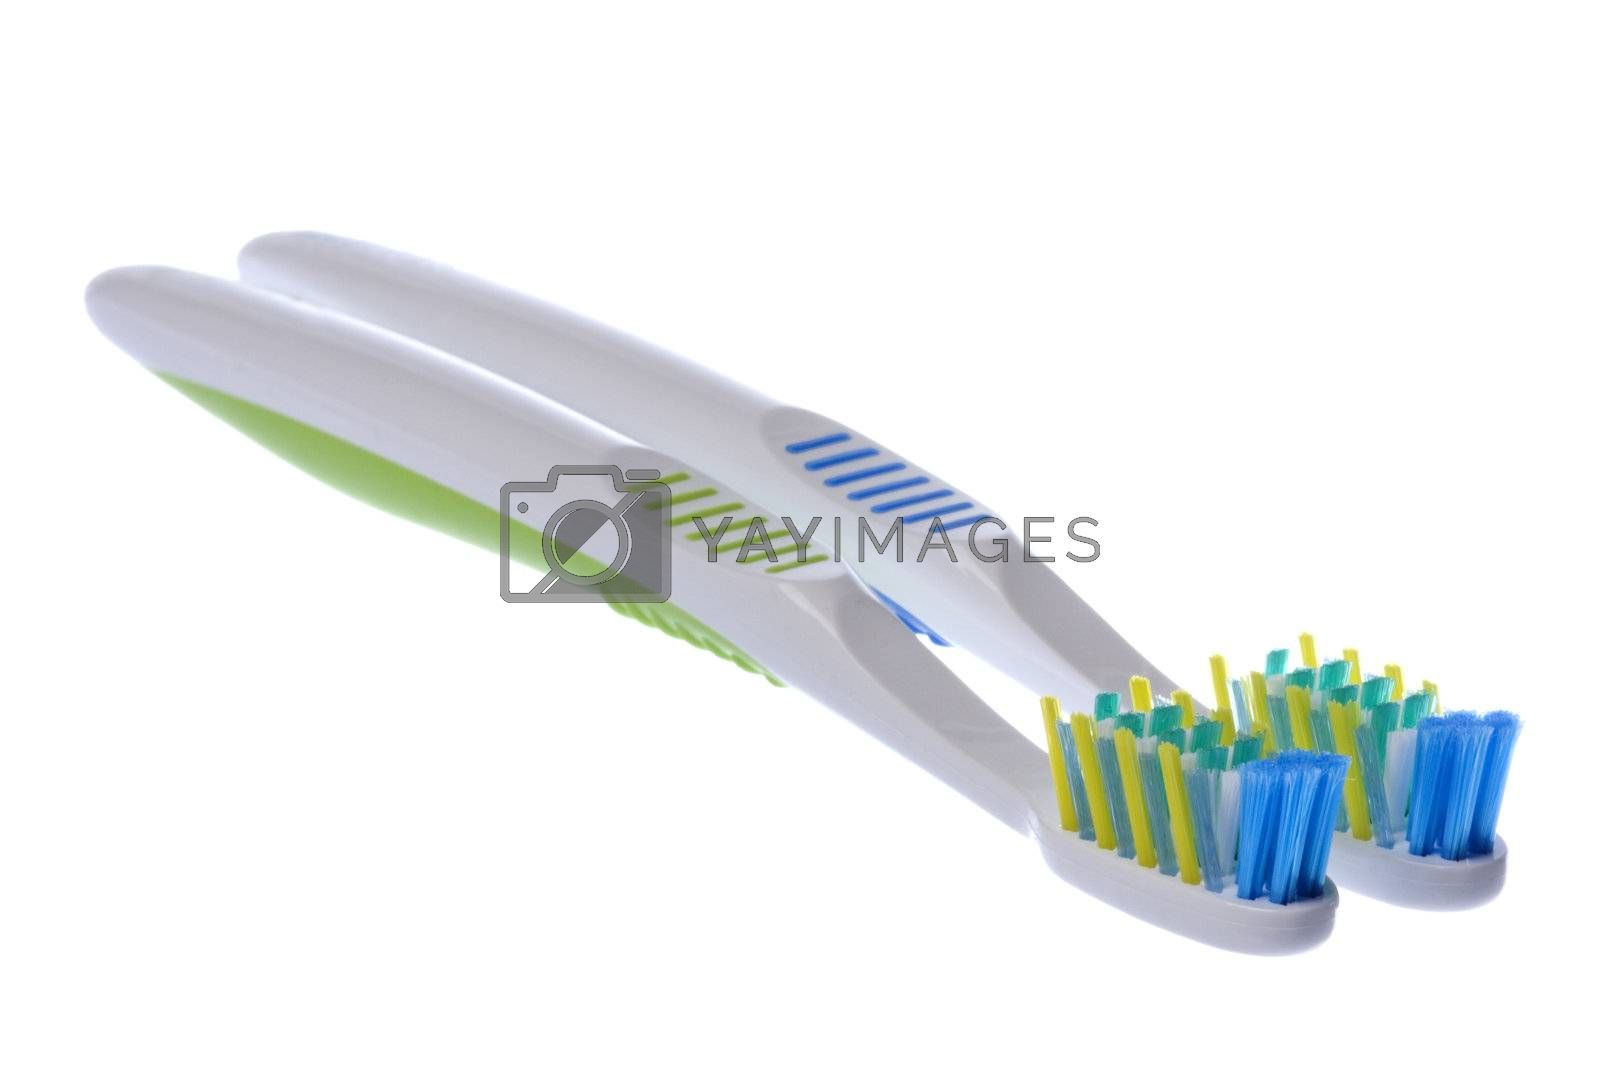 Isolated macro image of toothbrushes.